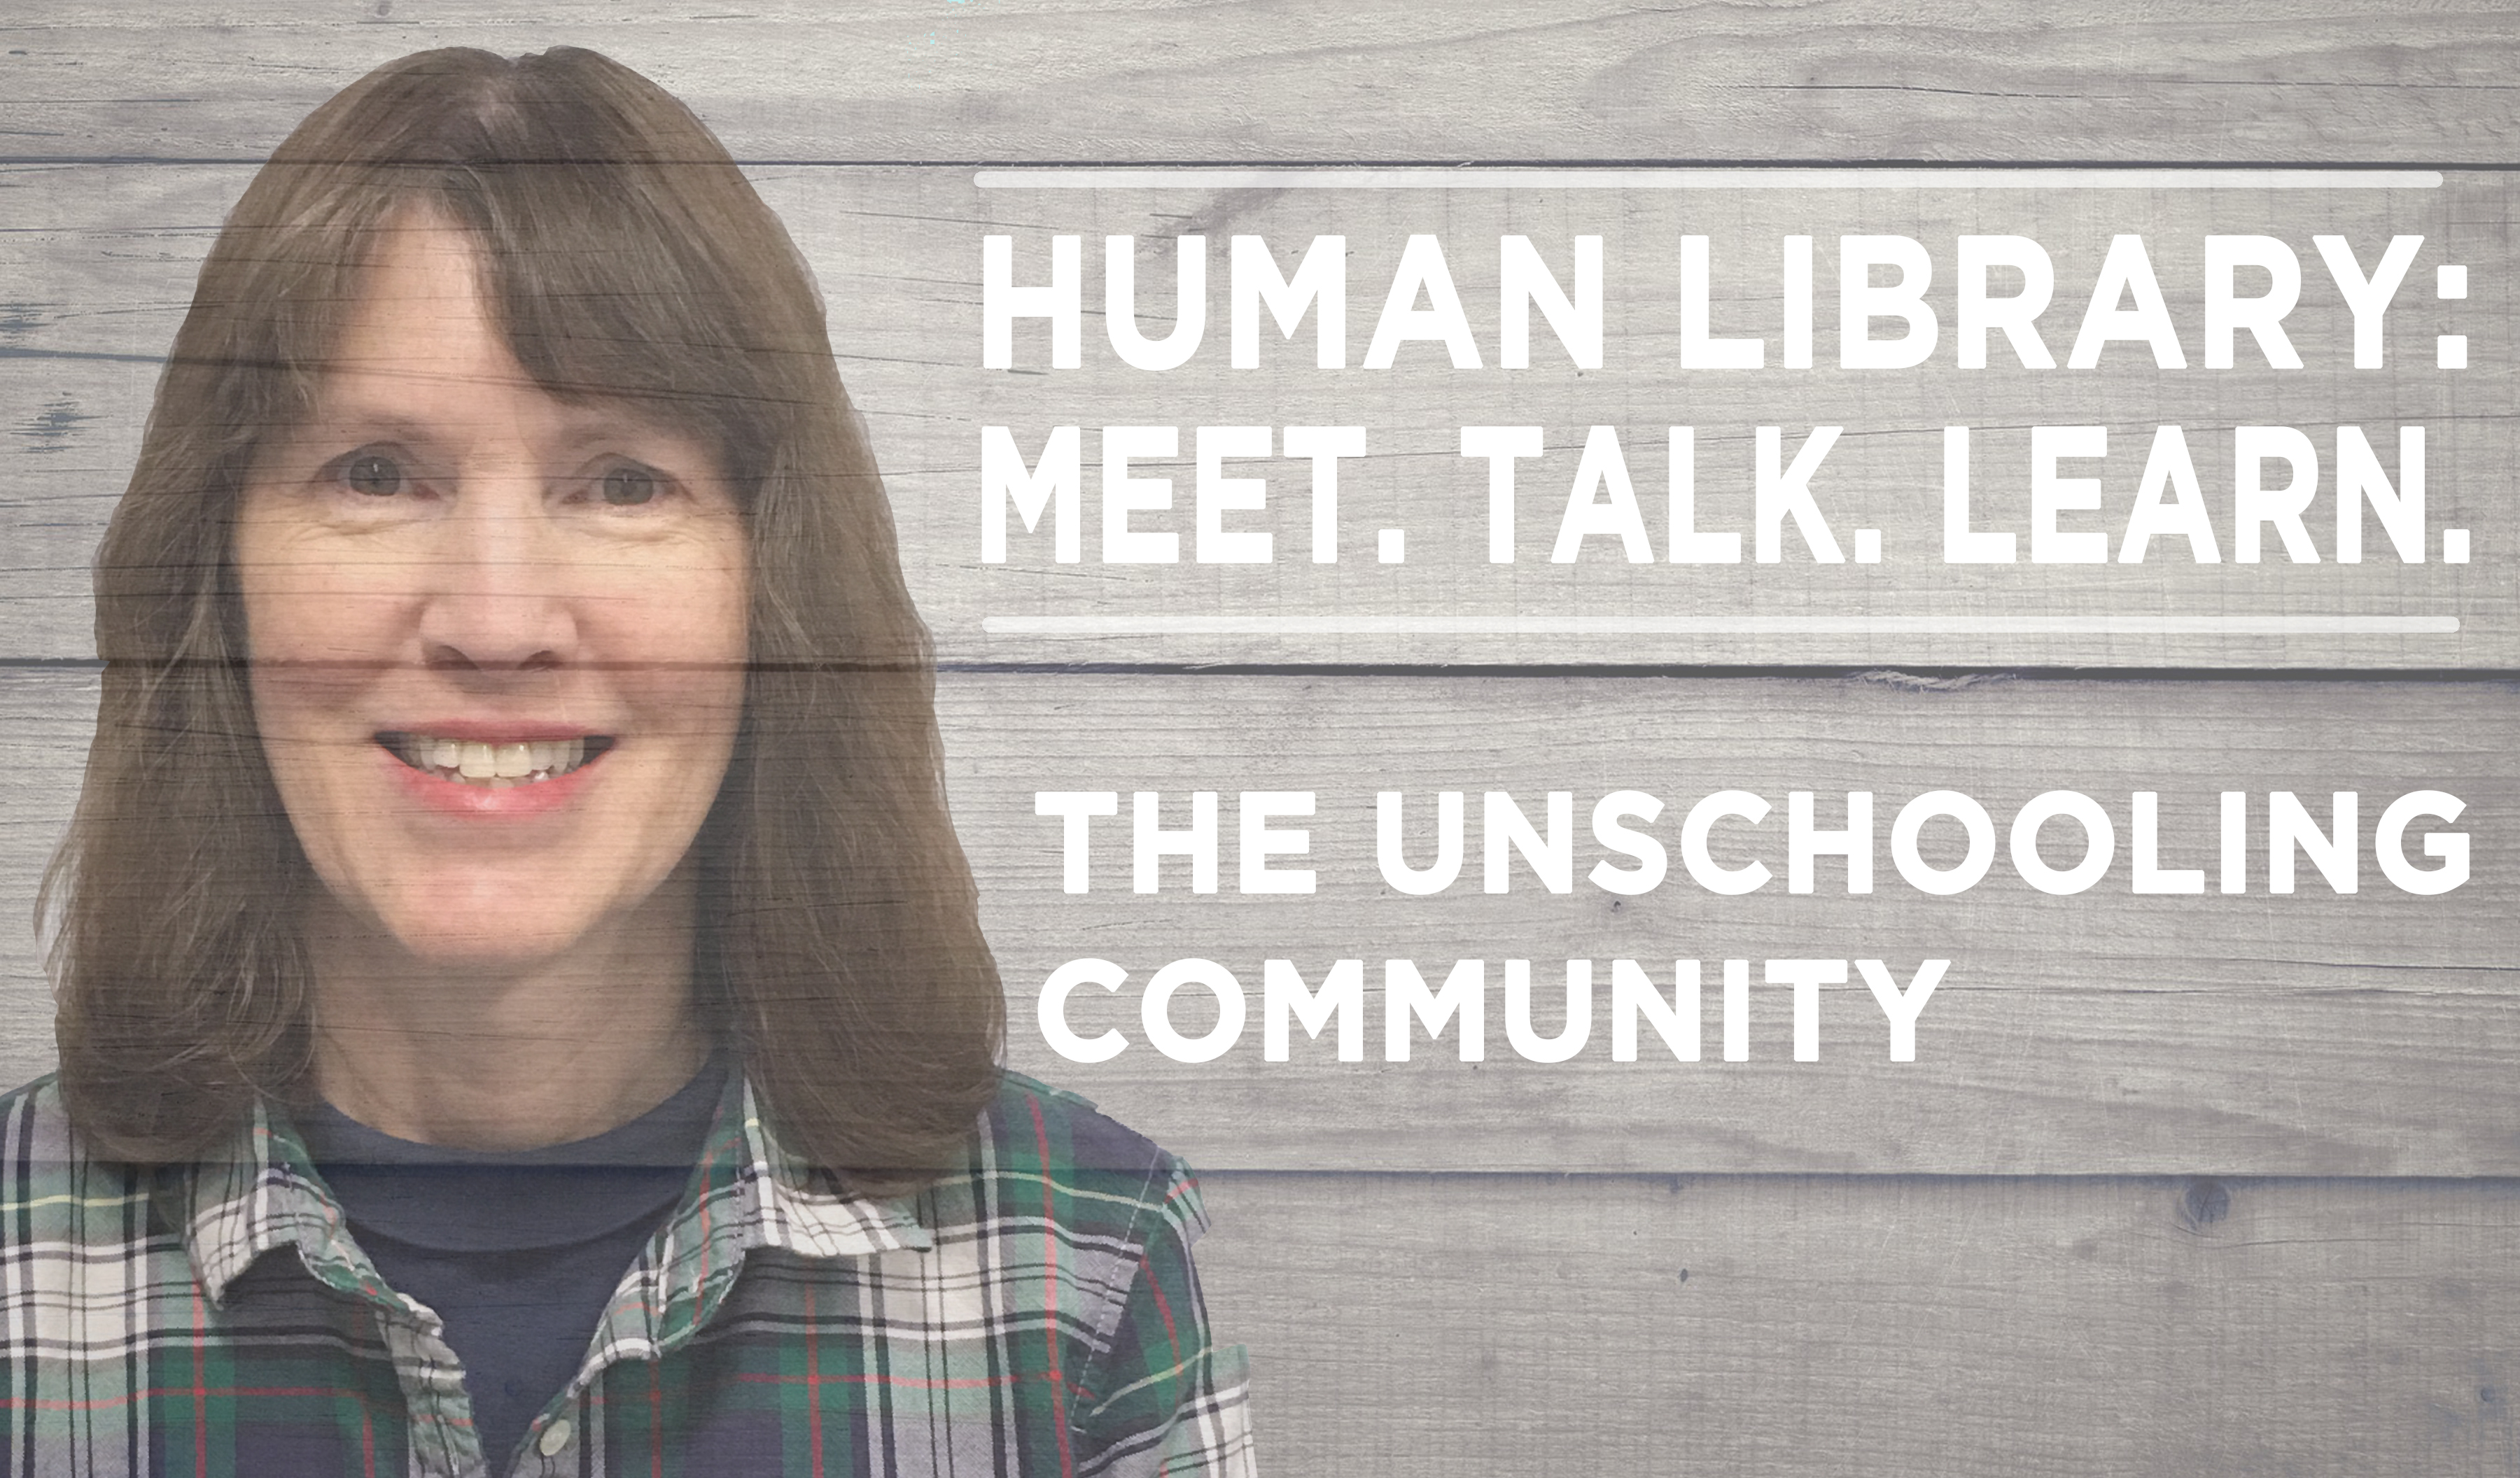 Human Library Unschooling Community